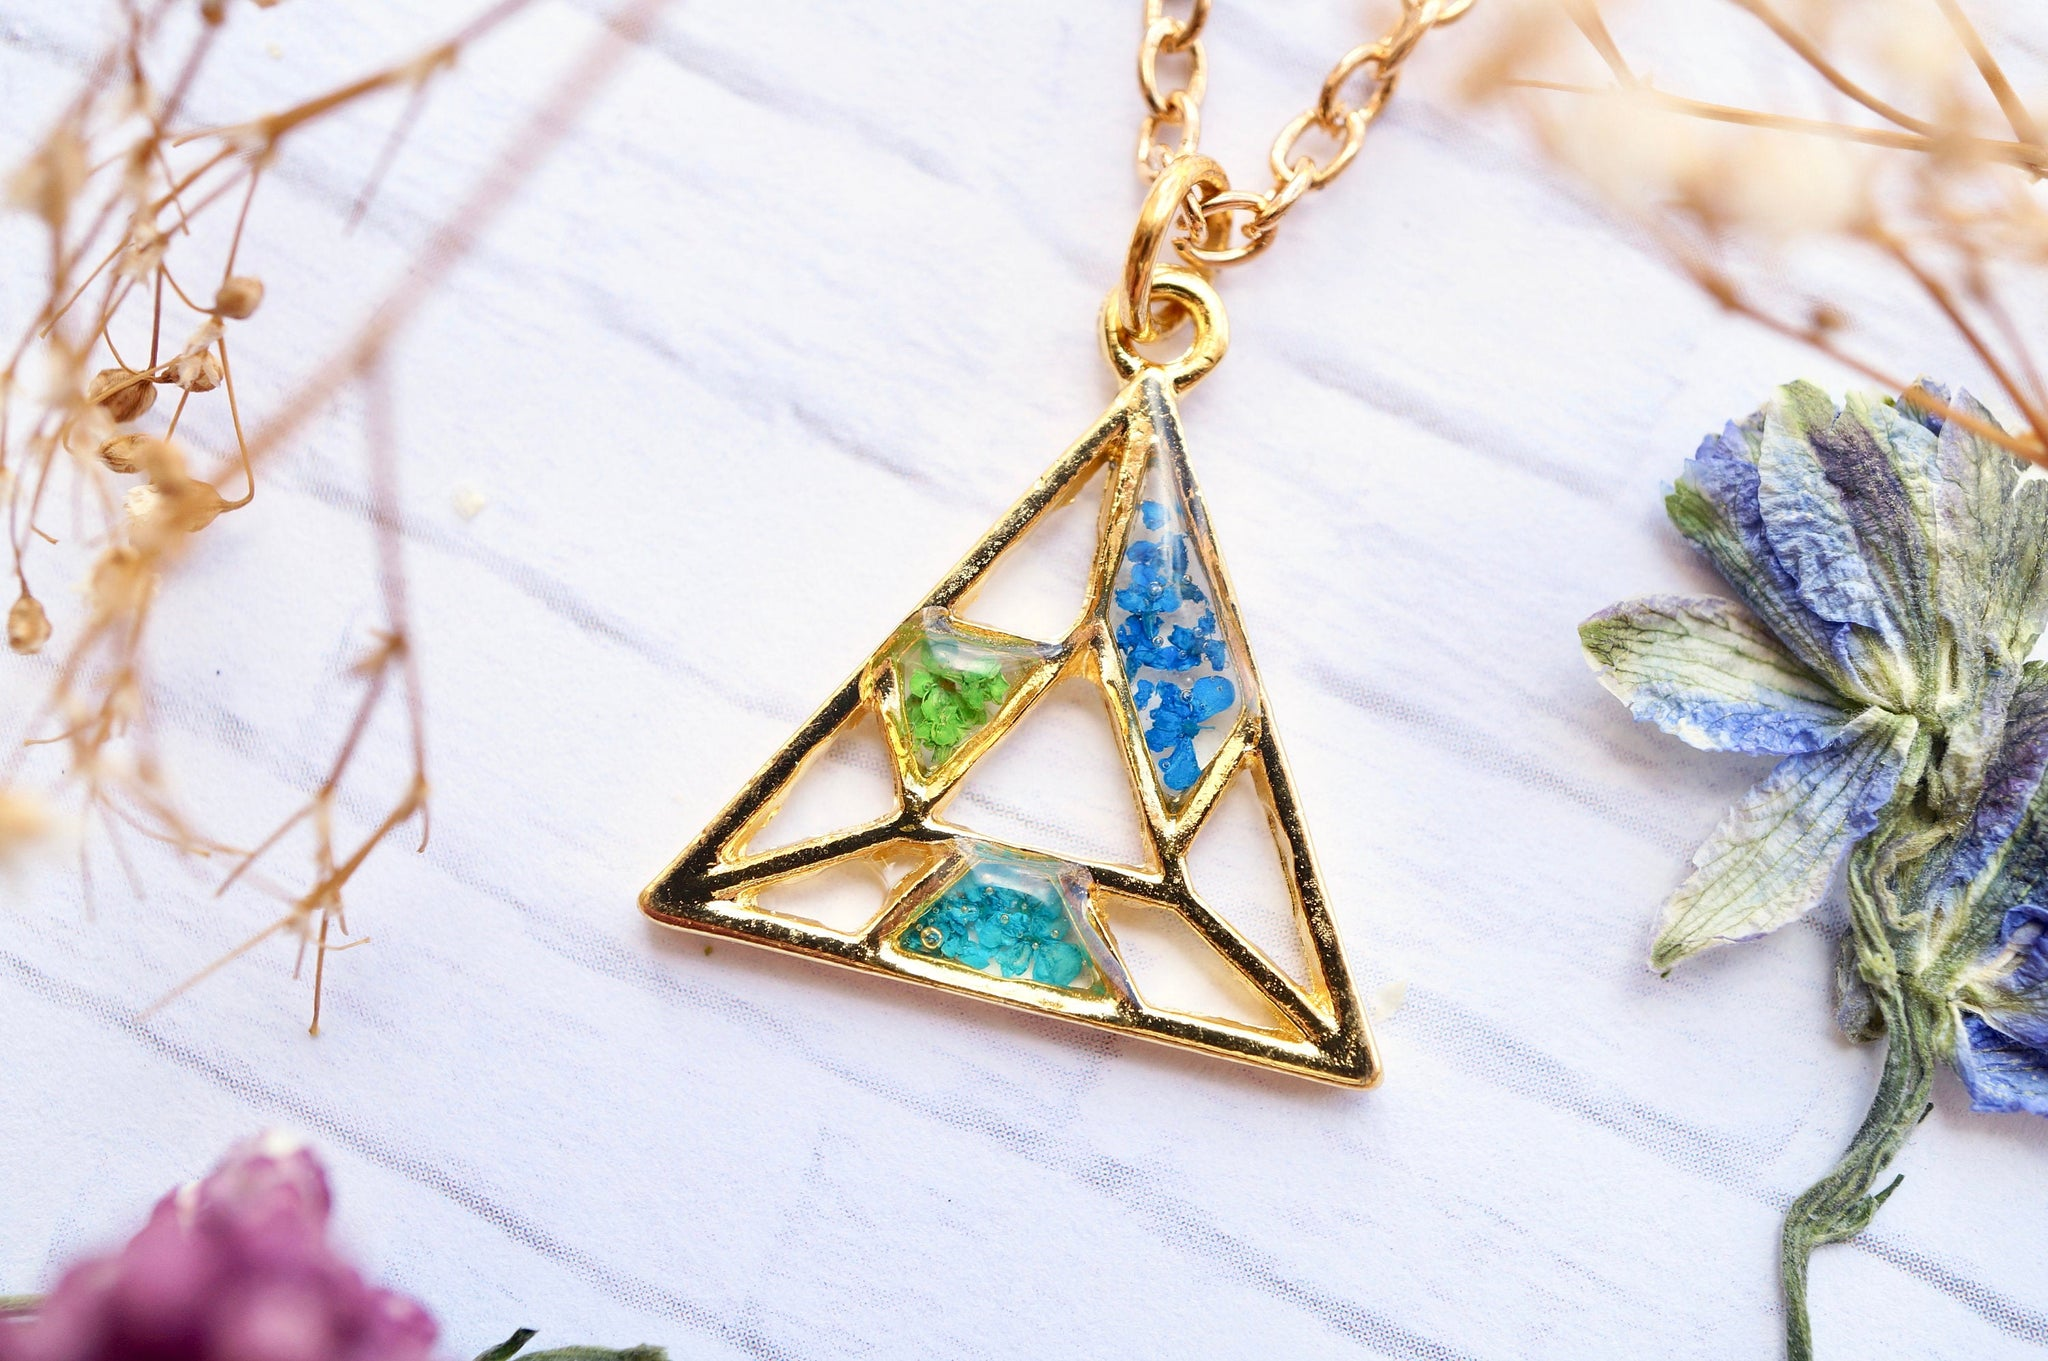 Real Pressed Flowers in Resin, Gold Triangle Necklace in Teal Green Blue